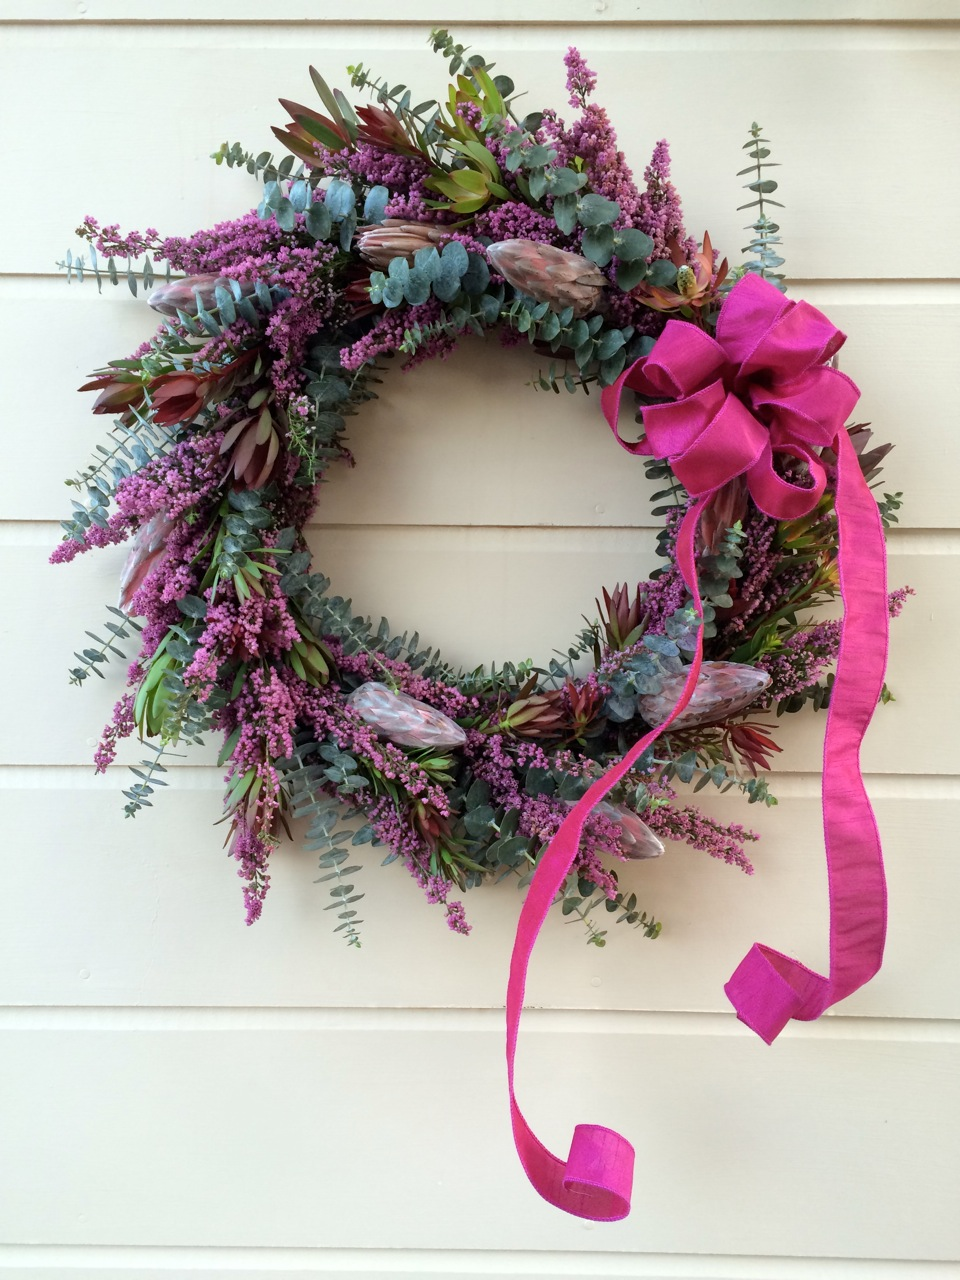 Protea/Heather Wreath February 2015